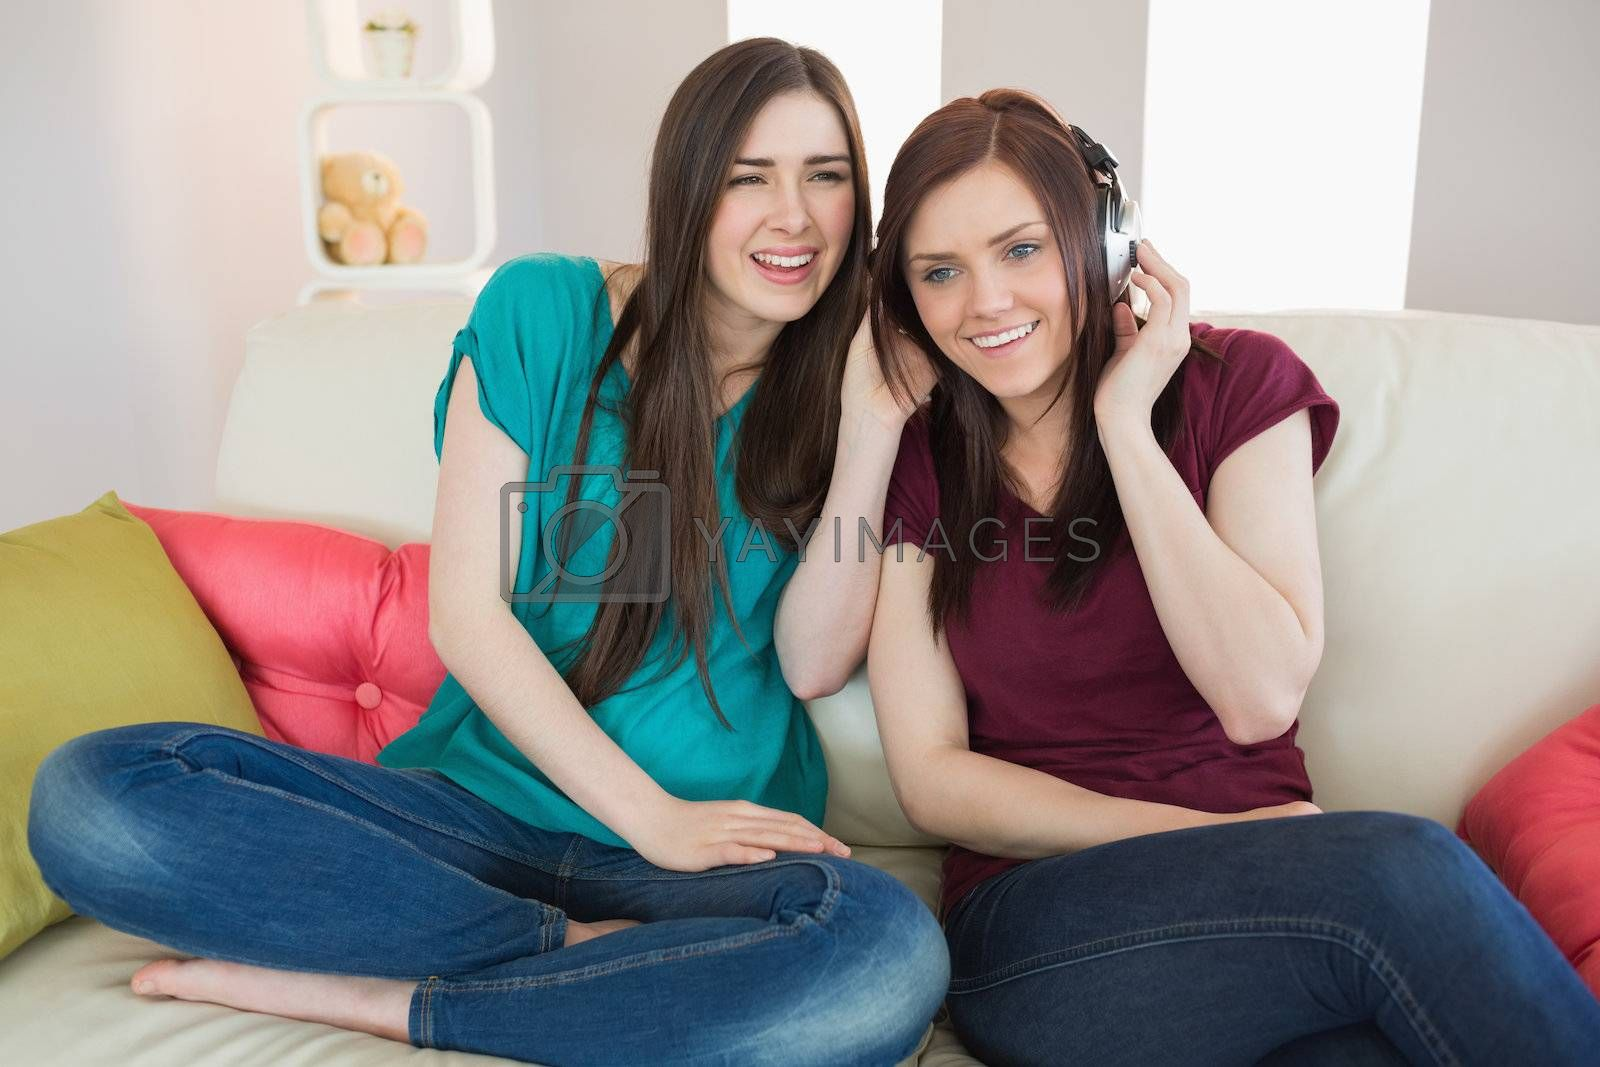 Smiling girl listening to music with her friend beside her on the sofa by Wavebreakmedia